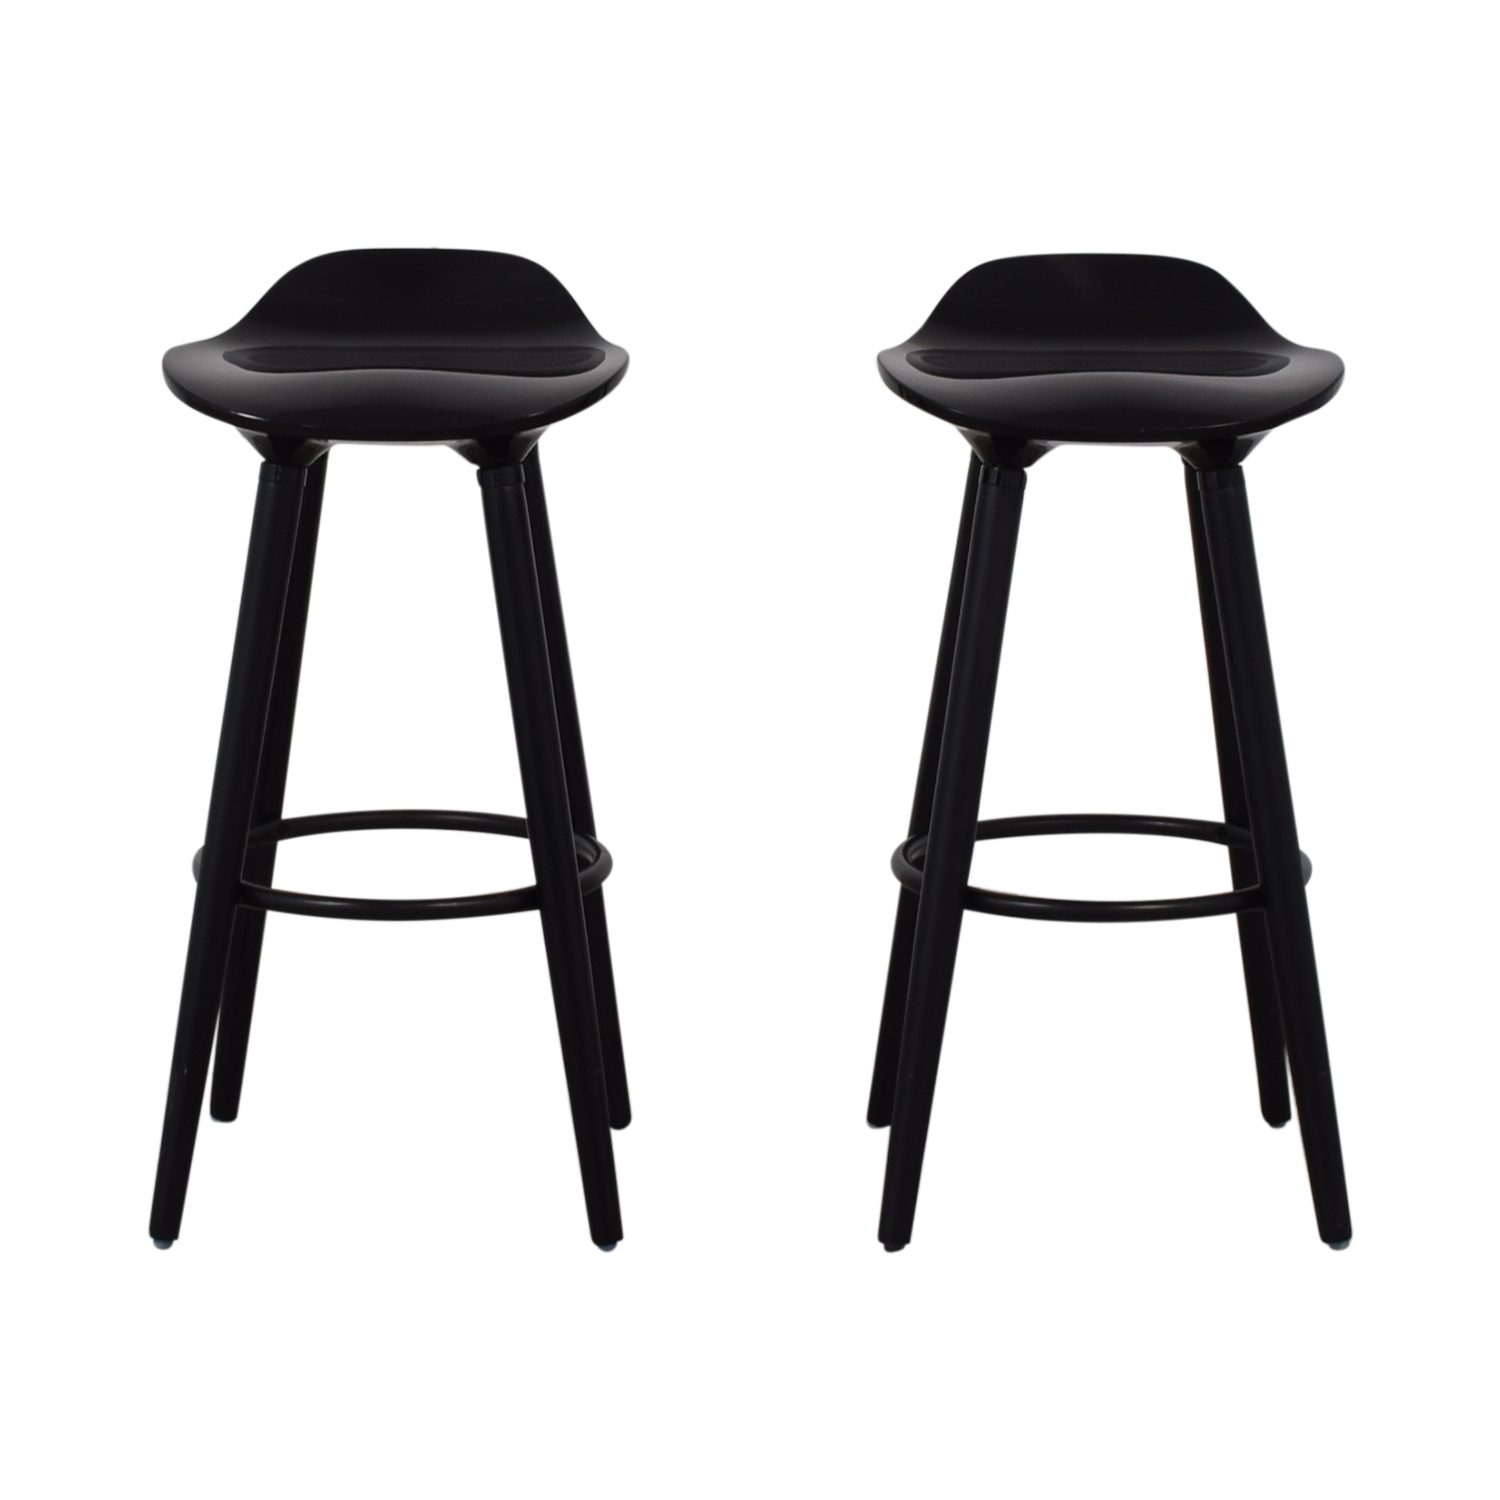 Sleek Black Modern Bar Stools Stools